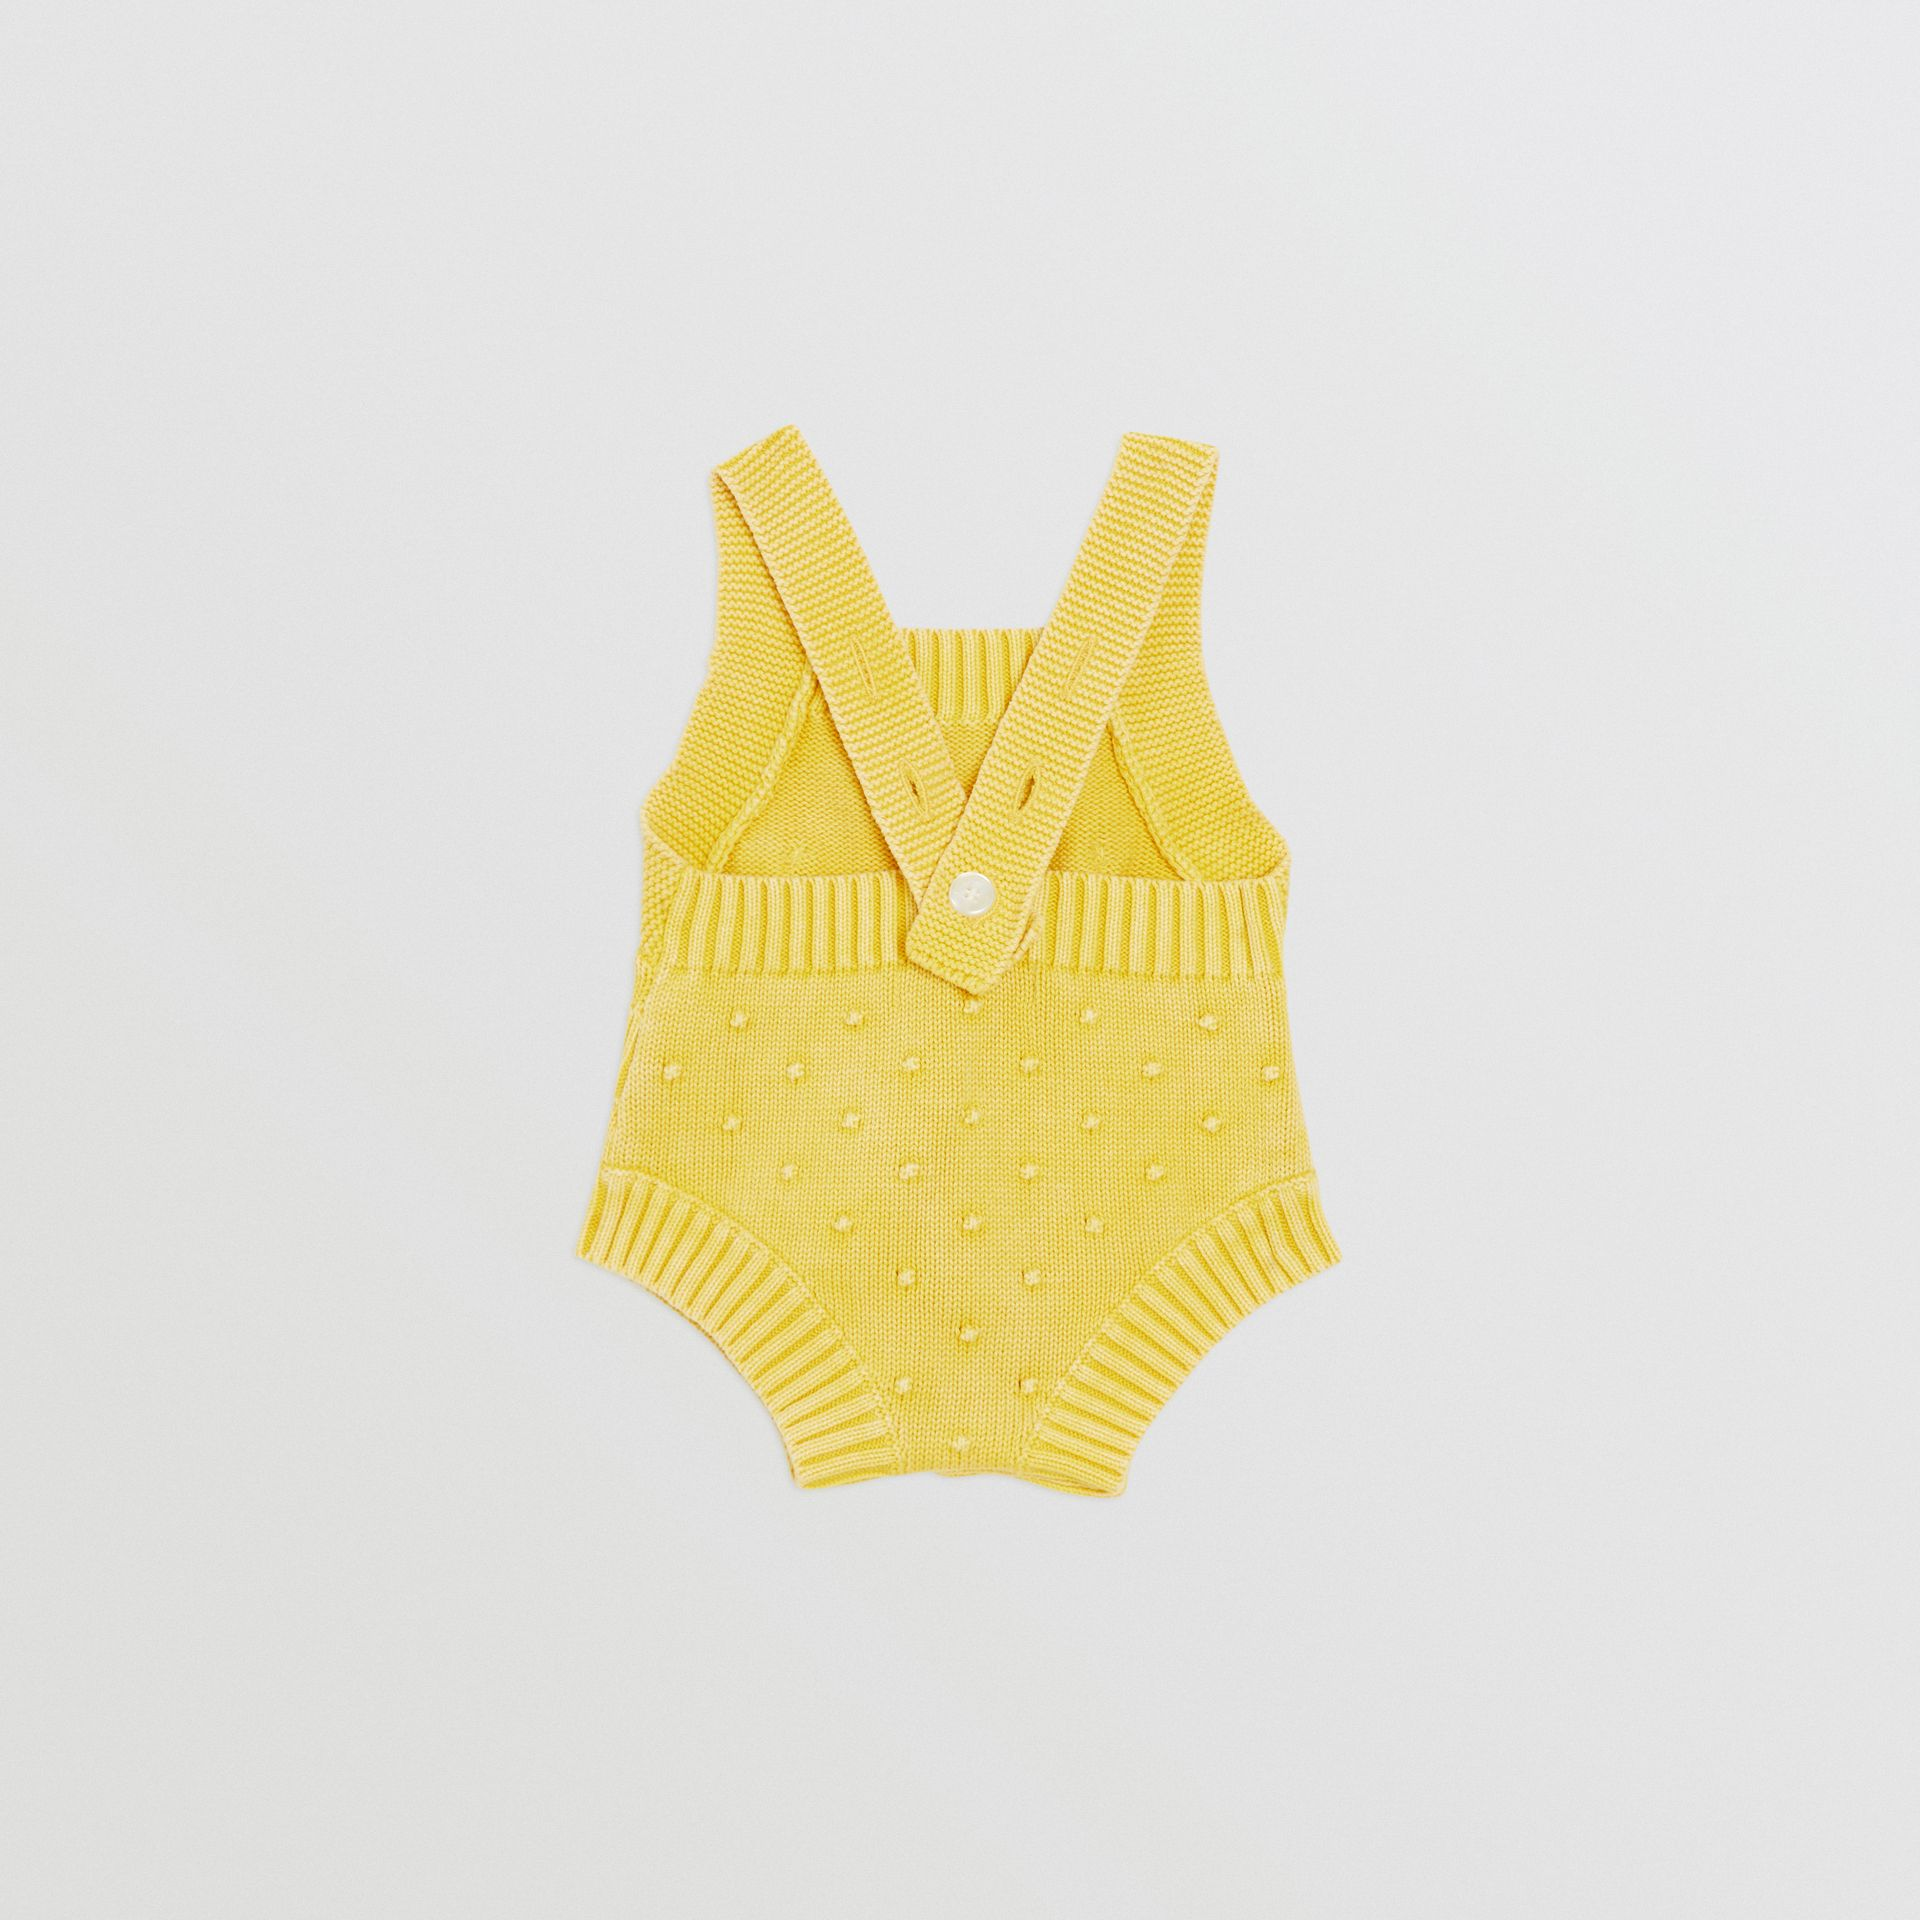 Contrast Knit Cotton Playsuit in Citrus Yellow - Children | Burberry United Kingdom - gallery image 3